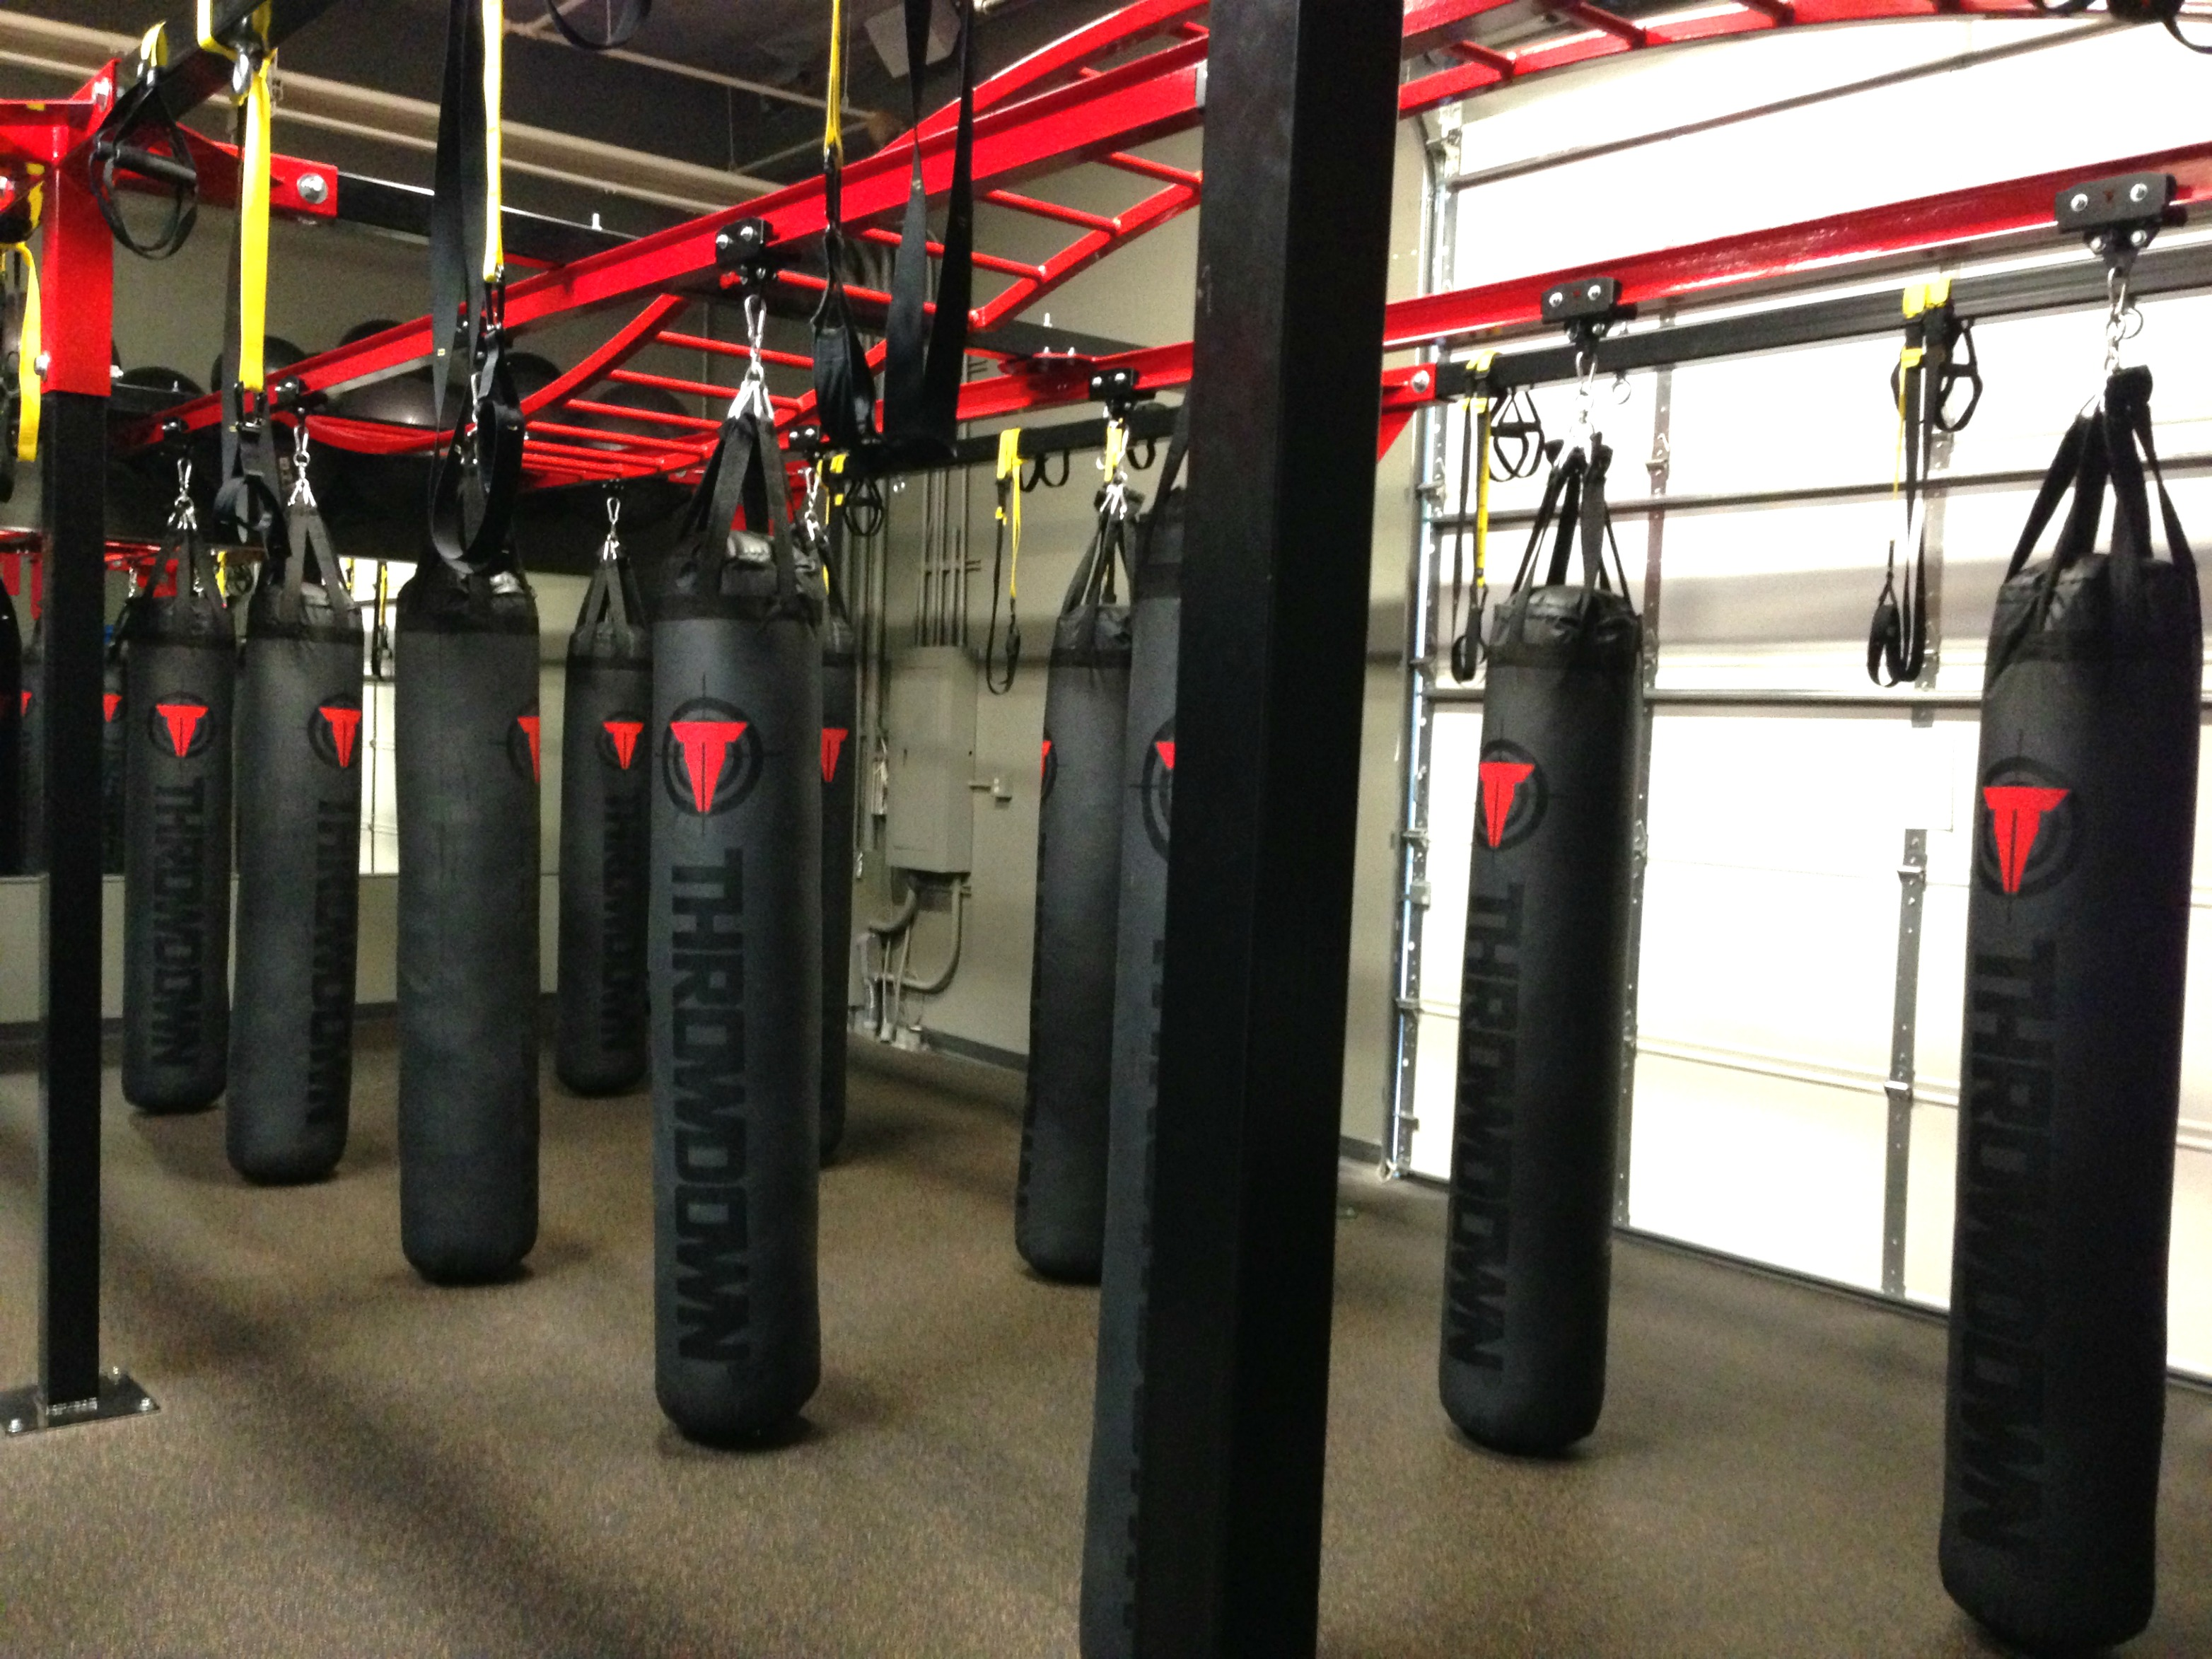 Experiencing Air Fit: Simulated High Altitude Training